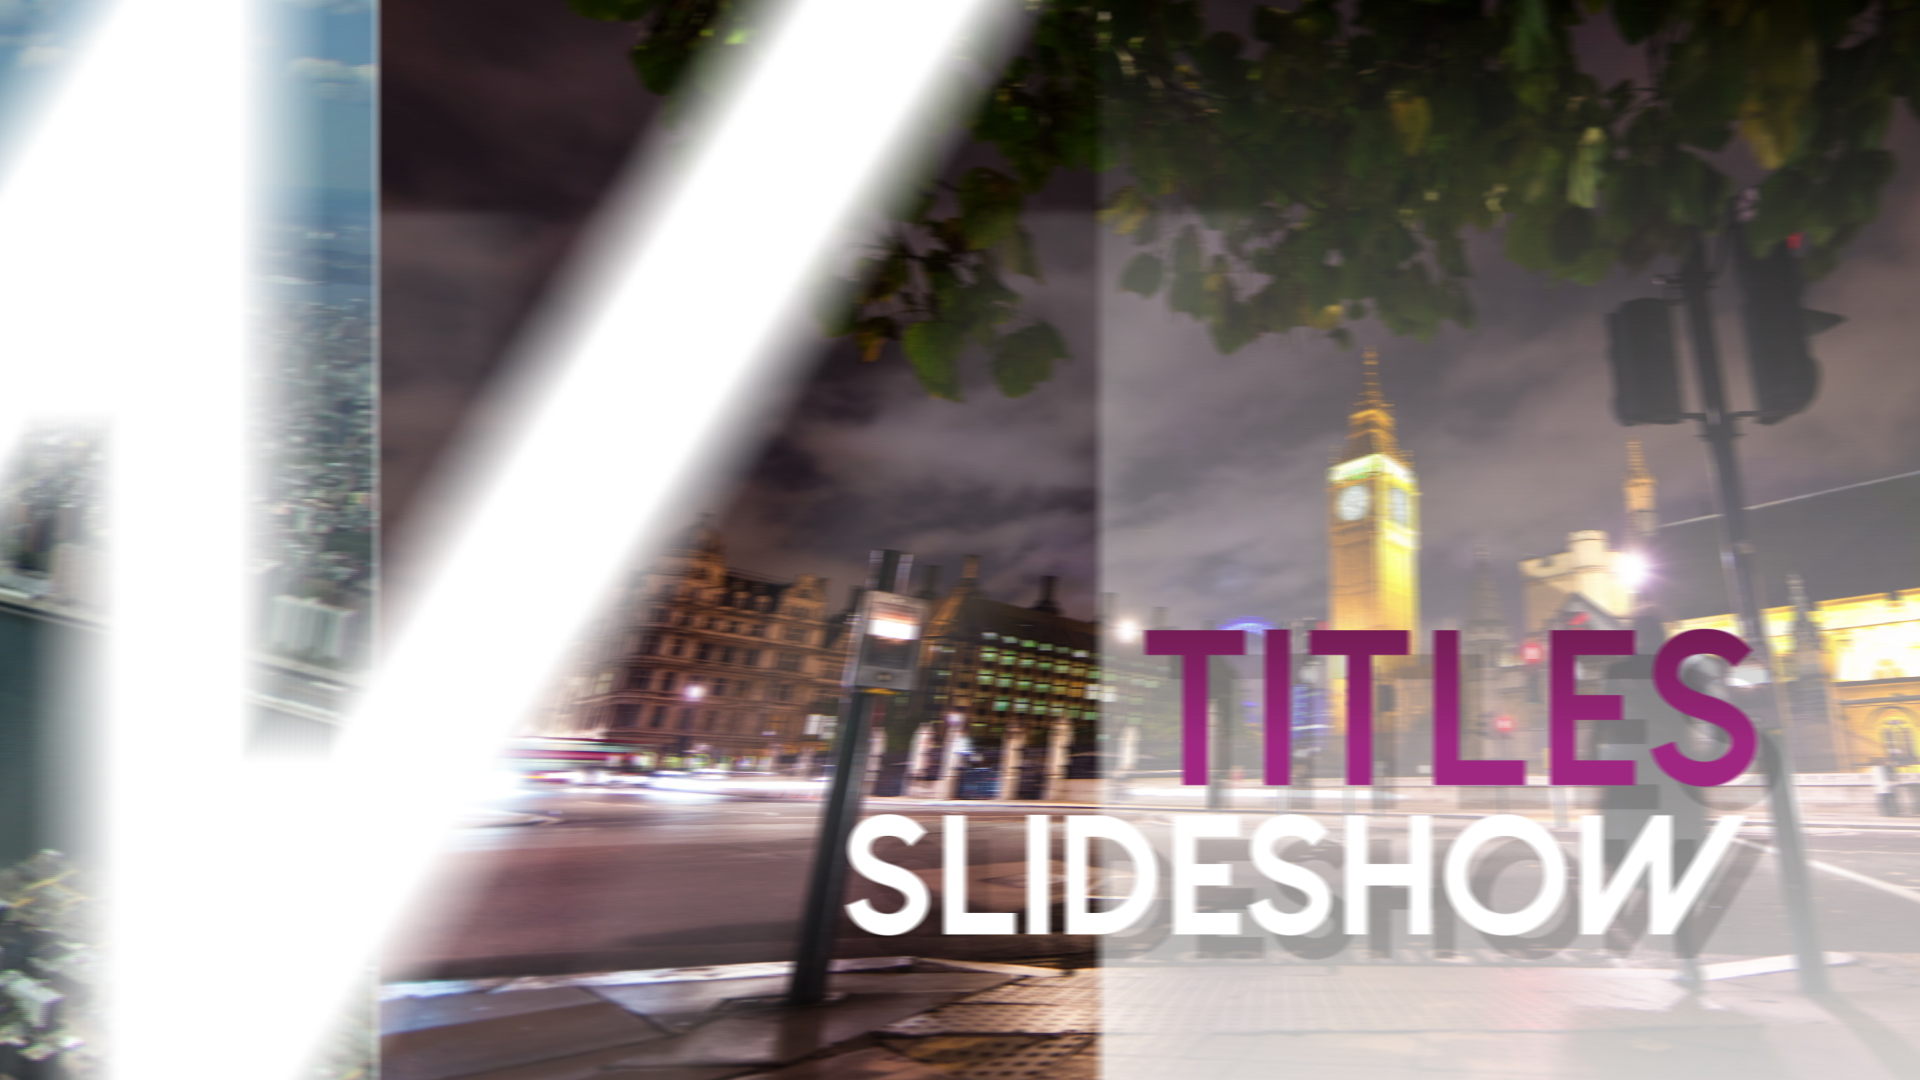 Titles slideshow apple motion 5 template for Motion 5 title templates